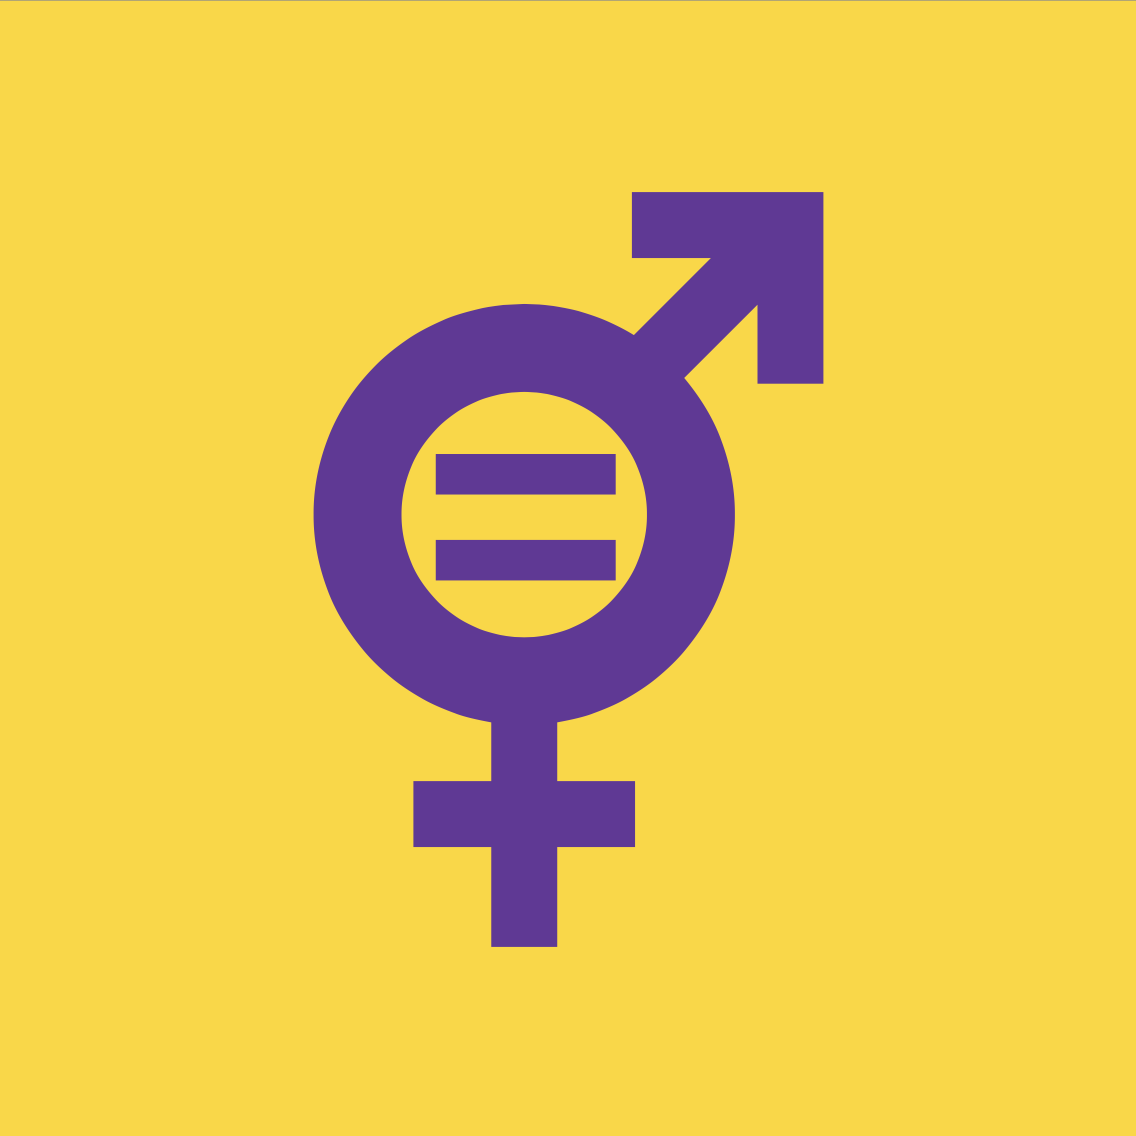 Statement by OII Europe, TGEU, ILGA-Europe and IGLYO on the AFNOR ISO work item proposal: Guidelines for the promotion and implementation of gender equality